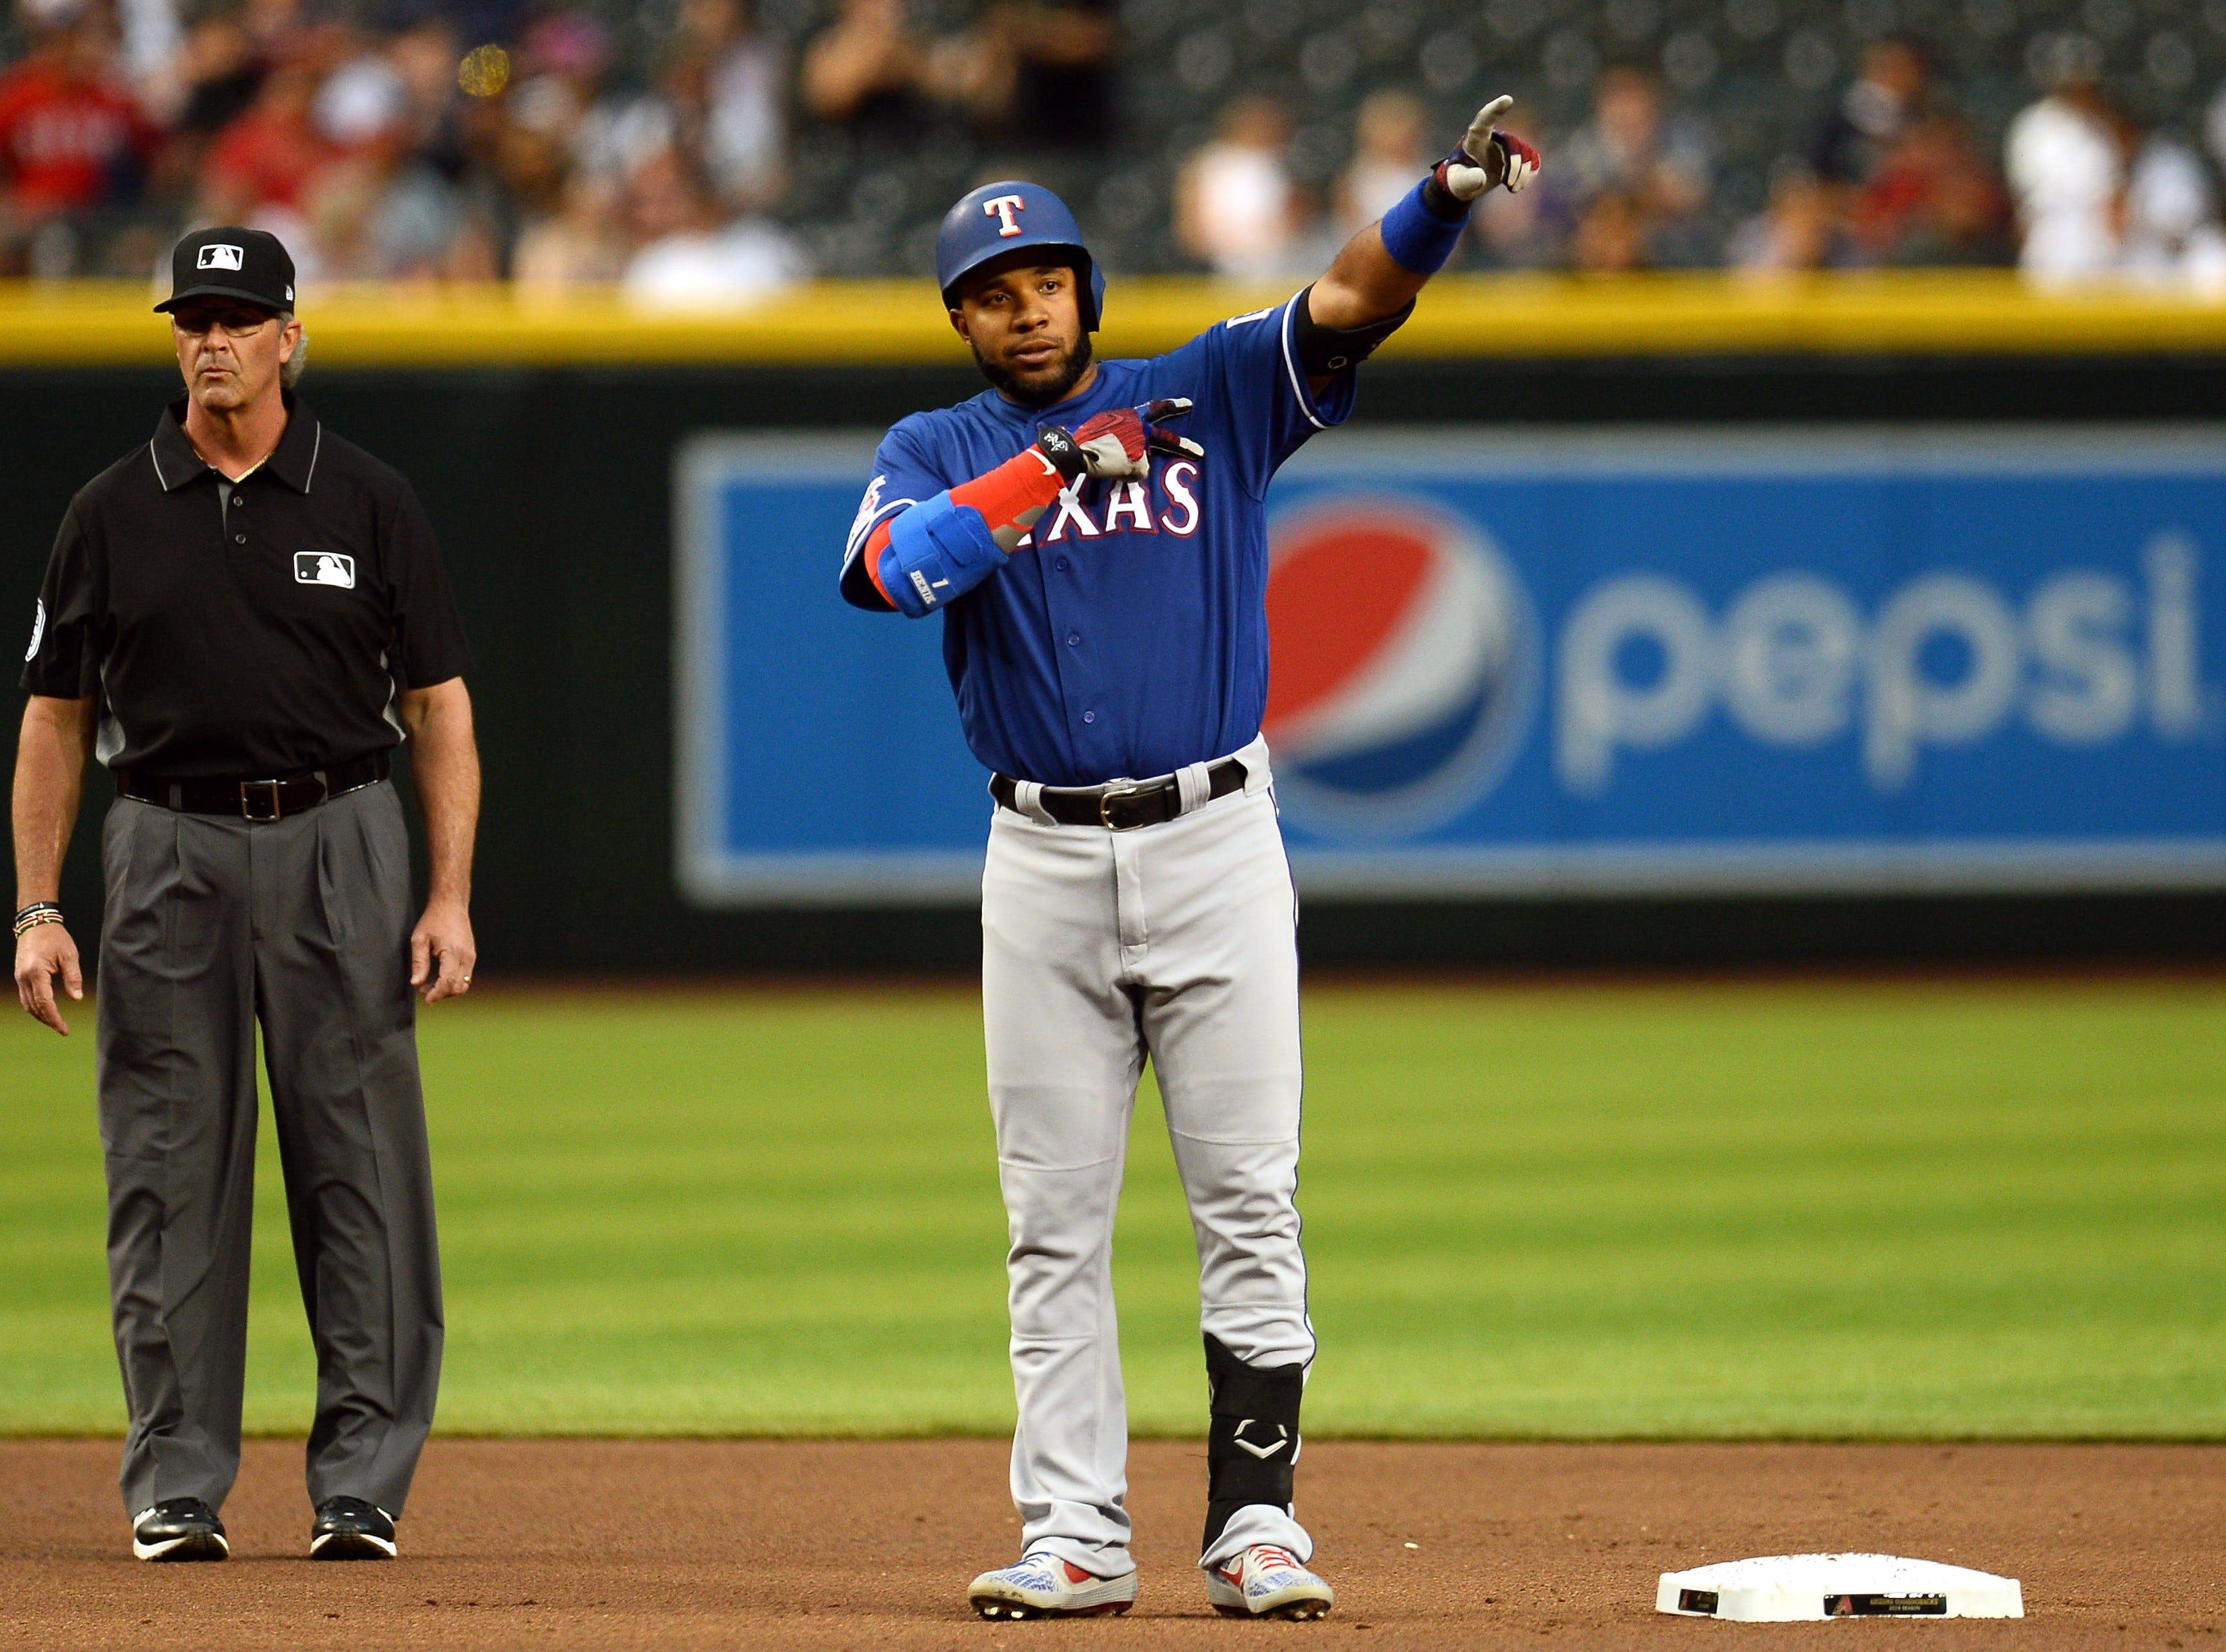 Apr 9, 2019; Phoenix, AZ, USA; Texas Rangers shortstop Elvis Andrus (1) reacts after hitting an RBI double against the Arizona Diamondbacks during the first inning at Chase Field. Mandatory Credit: Joe Camporeale-USA TODAY Sports